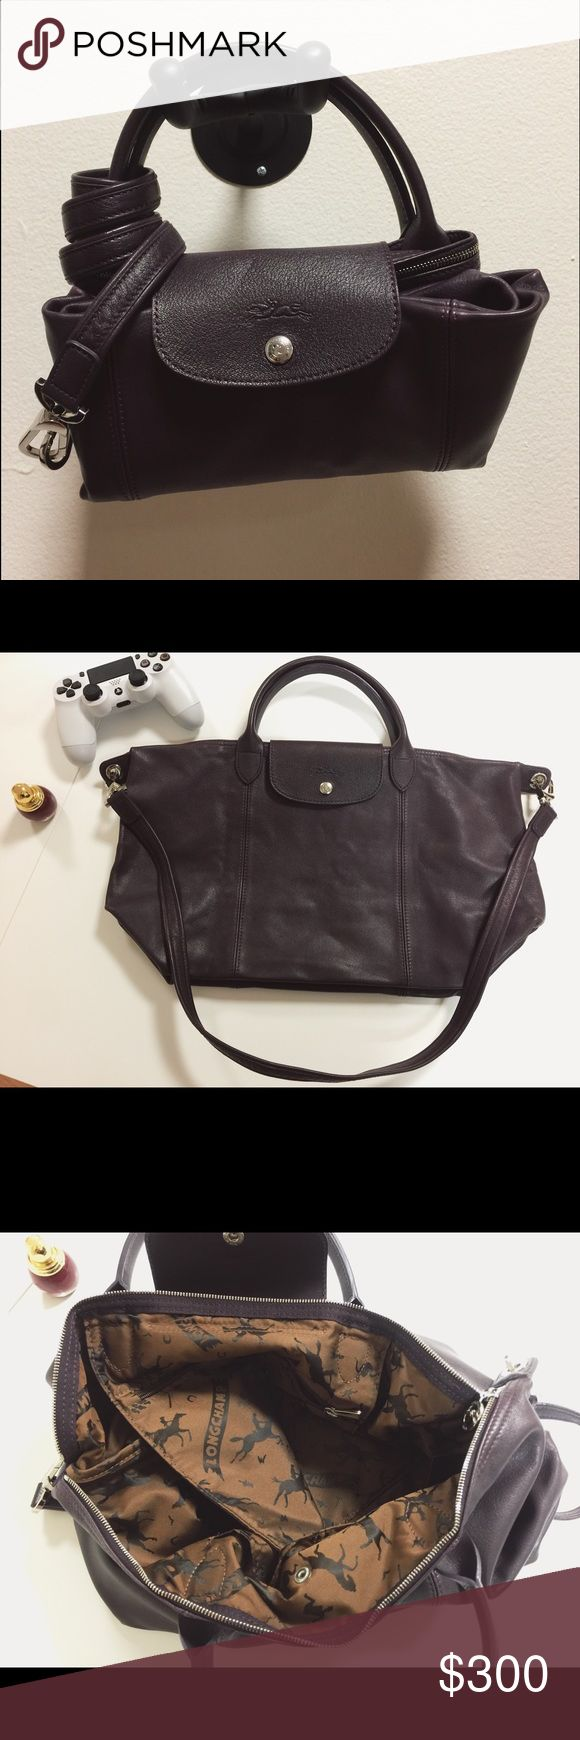 Longchamp Le Pliage Cuir Leather handbag Size small, color bilberry, leather, slightly used, with cross body strap Longchamp Bags Crossbody Bags